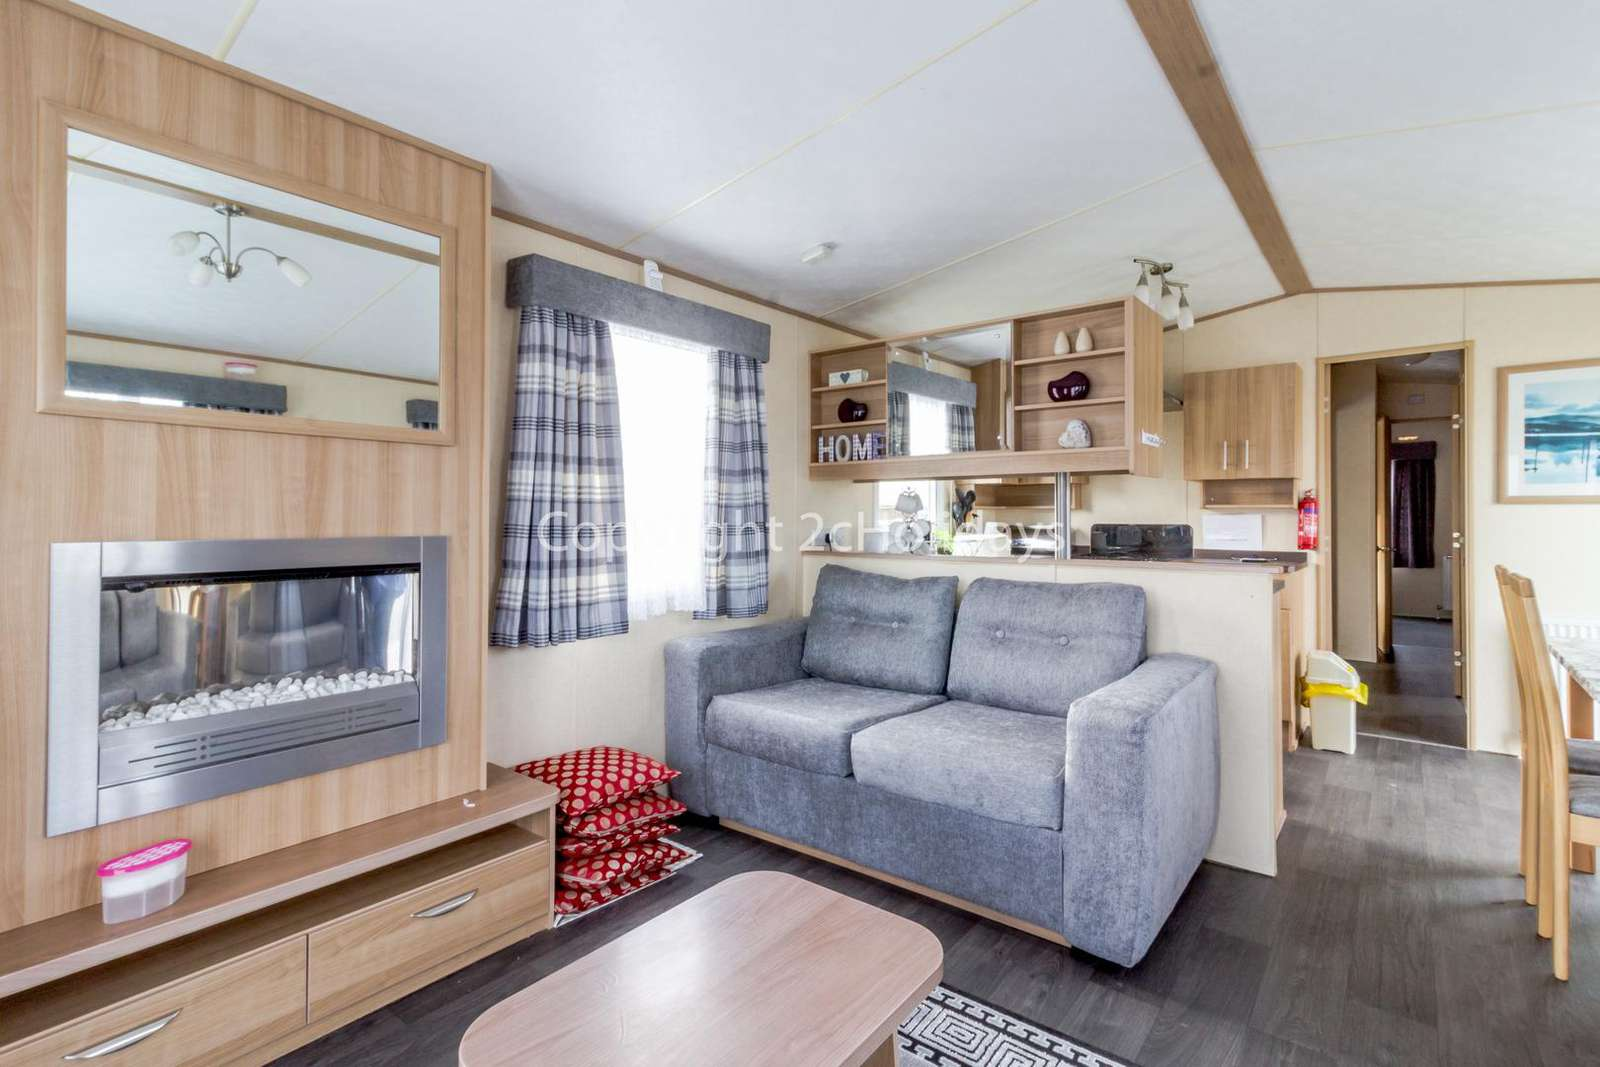 Homely feel to this holiday home with an electric home